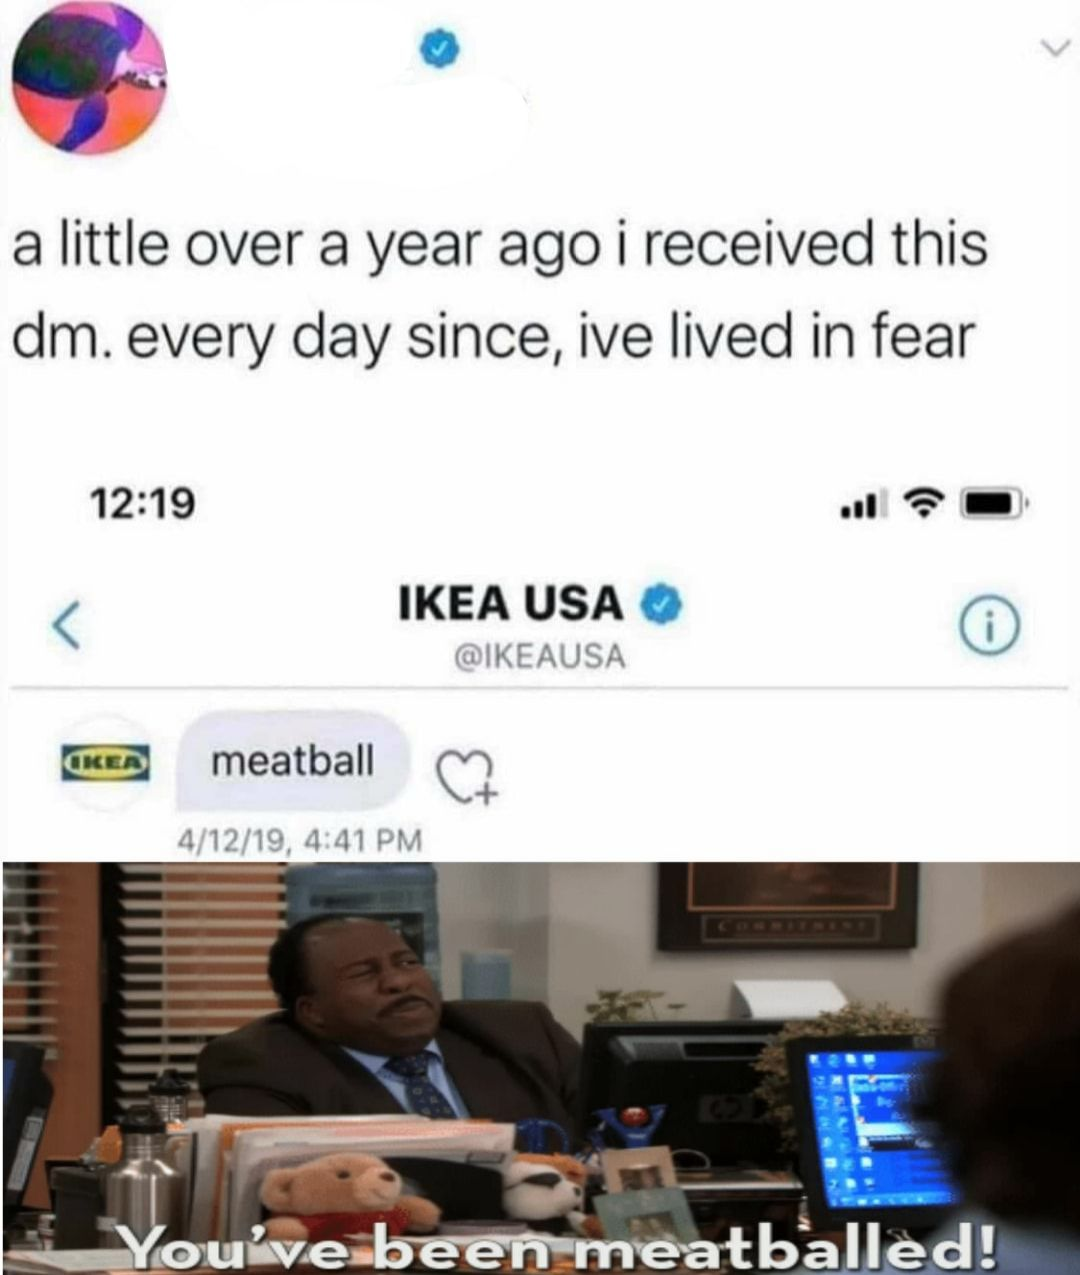 Who hasn't been meatballed nowadays